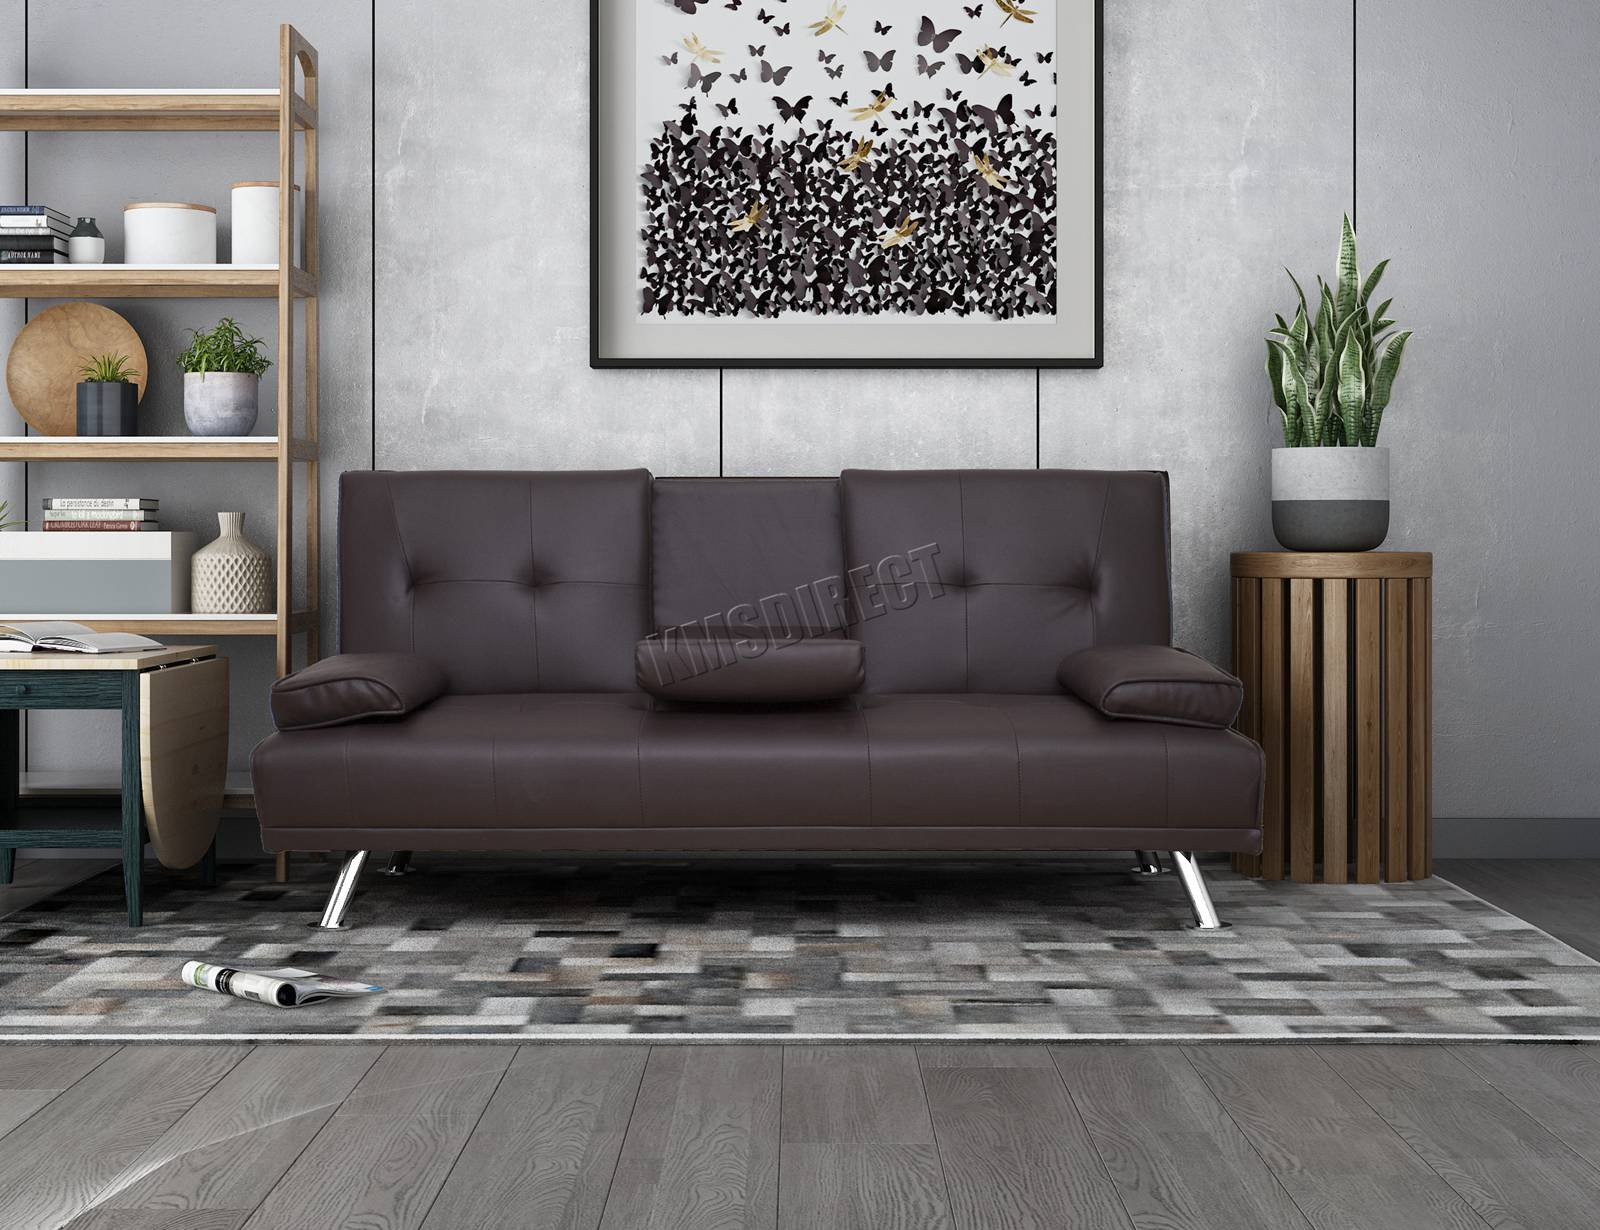 WestWood-Faux-Leather-Manhattan-Sofa-Bed-recliner-3-Seater-Modern-Luxury-Design thumbnail 23